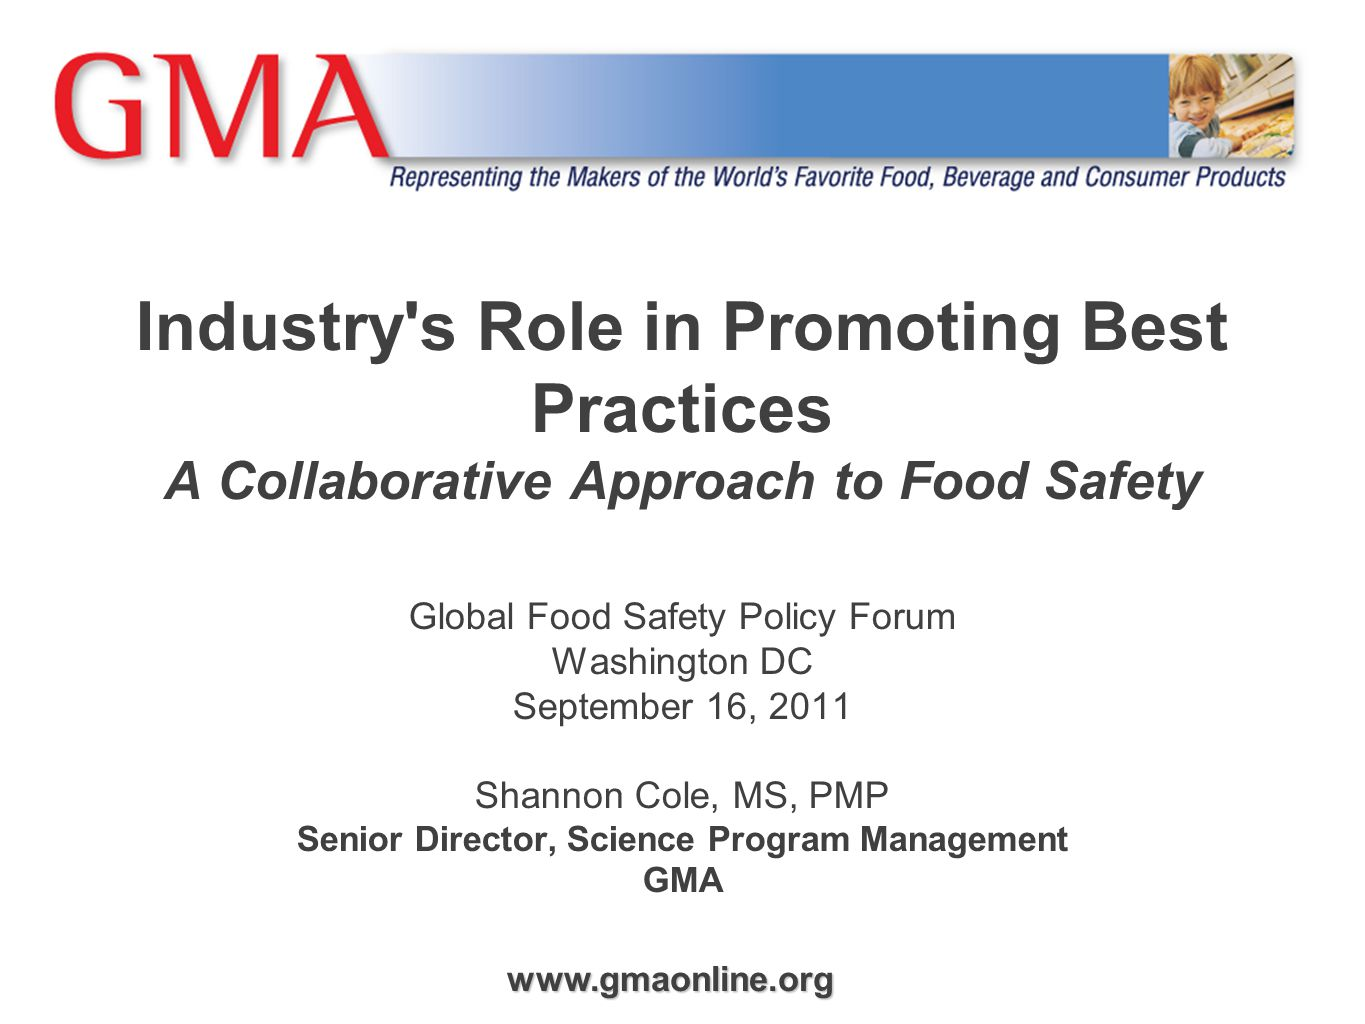 Industry s Role in Promoting Best Practices A Collaborative Approach to Food Safety Global Food Safety Policy Forum Washington DC September 16, 2011 Shannon Cole, MS, PMP Senior Director, Science Program Management GMA